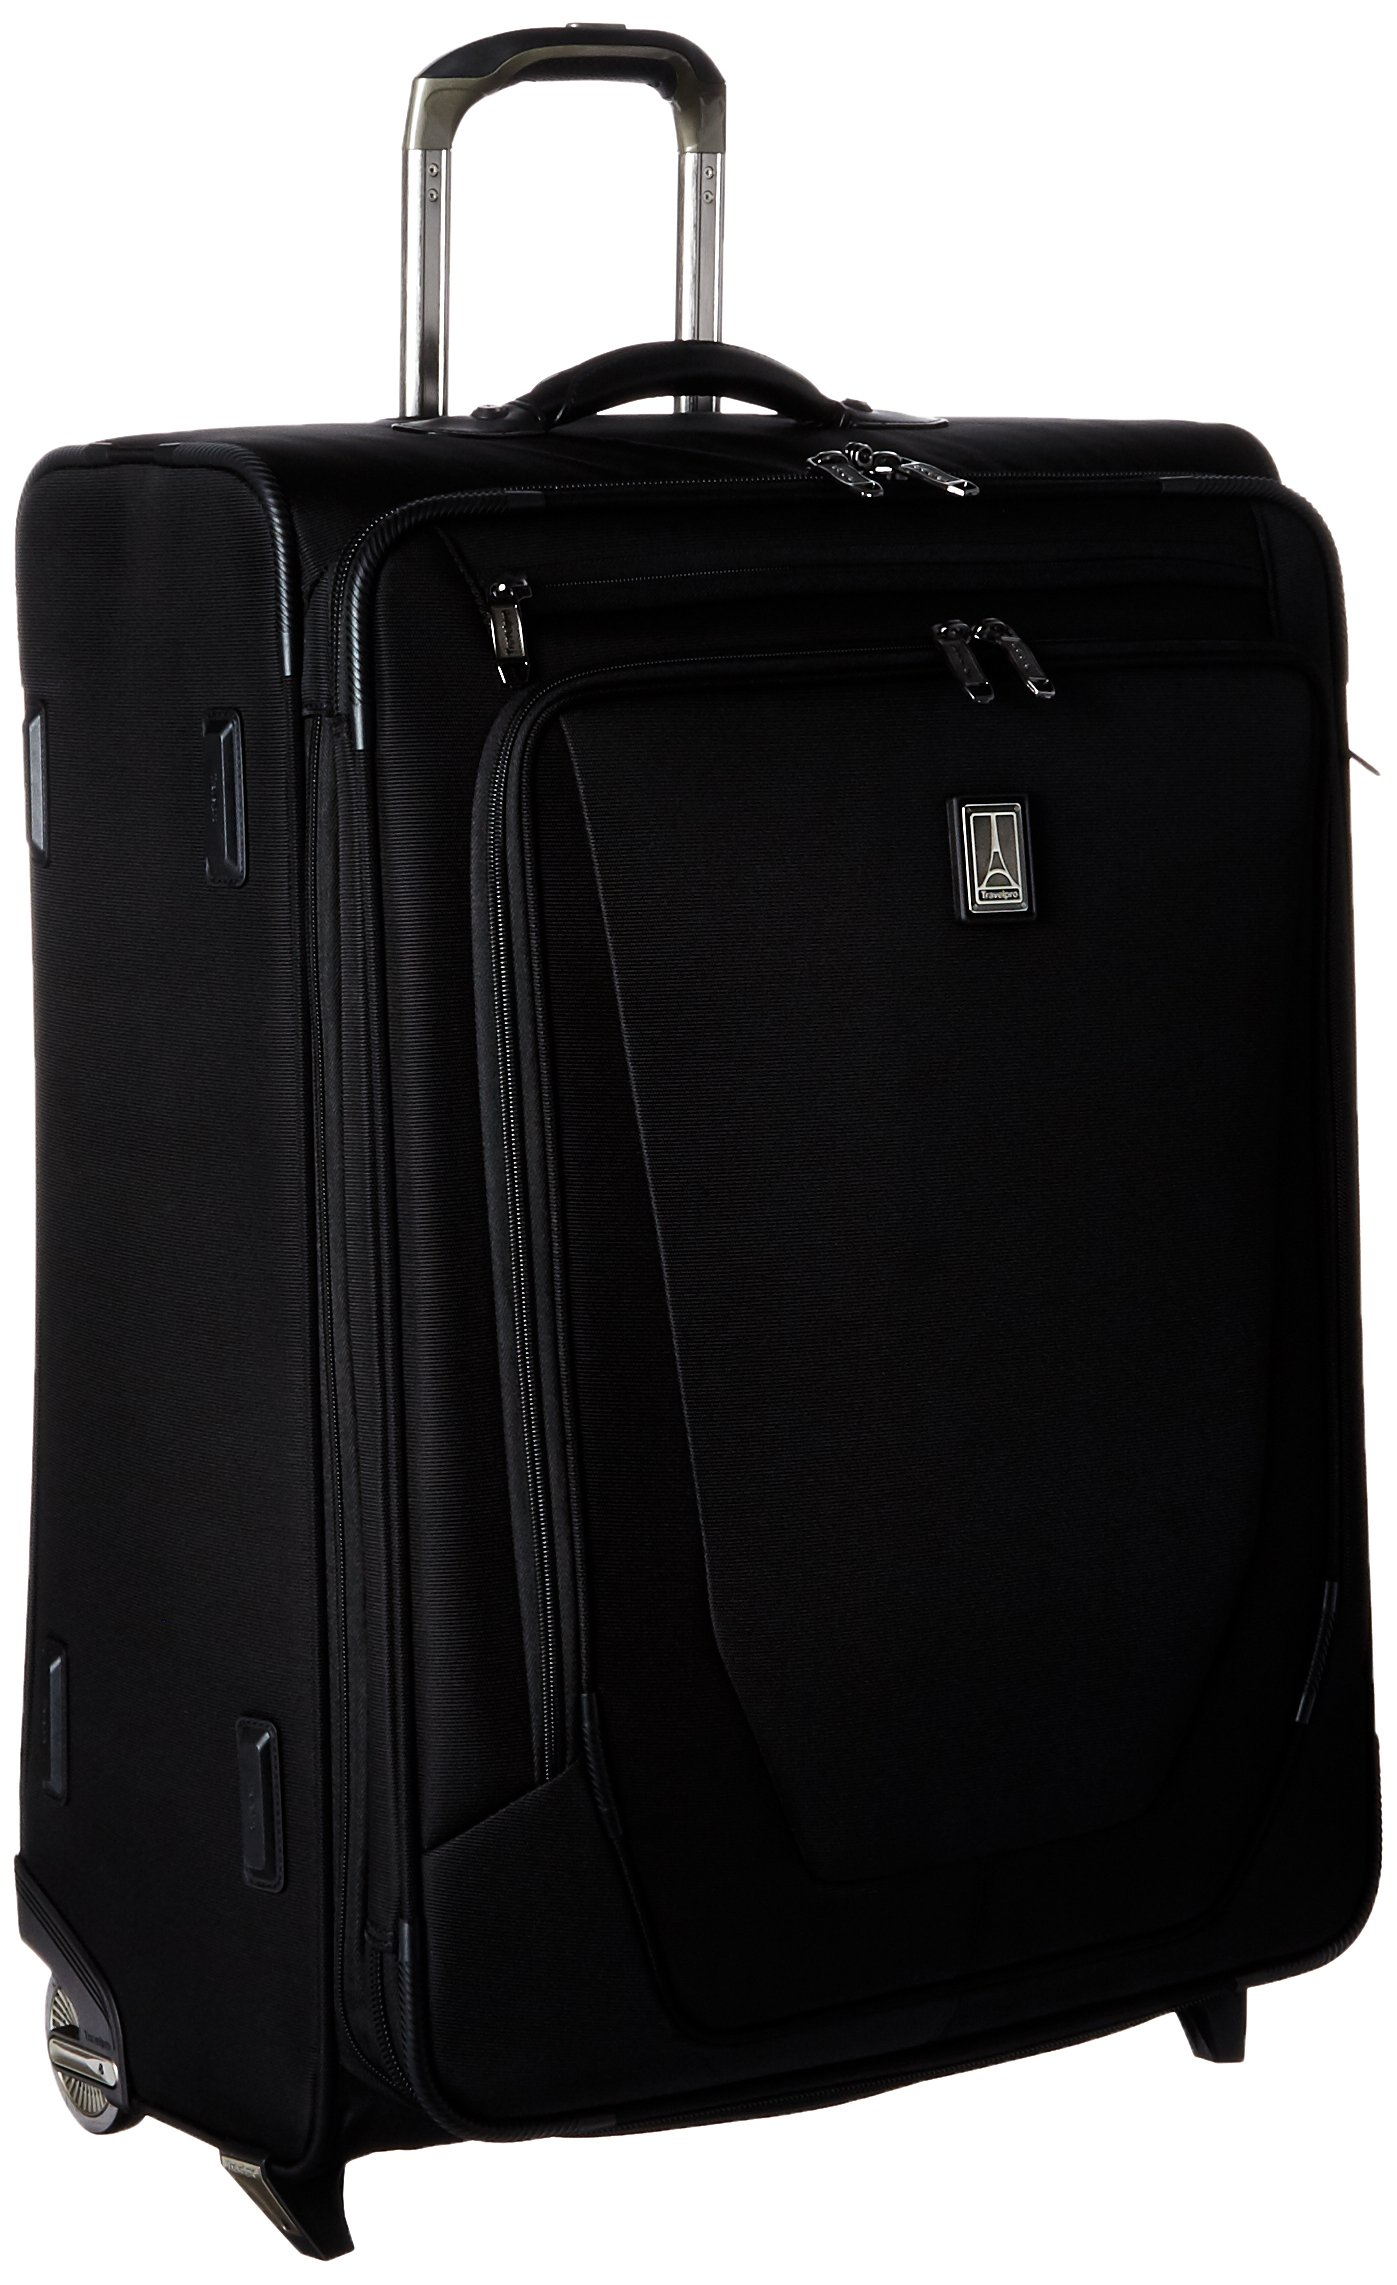 Travelpro Crew 11 Expandable Rollaboard Wheeled Suiter Suitcase, Black by Travelpro (Image #6)